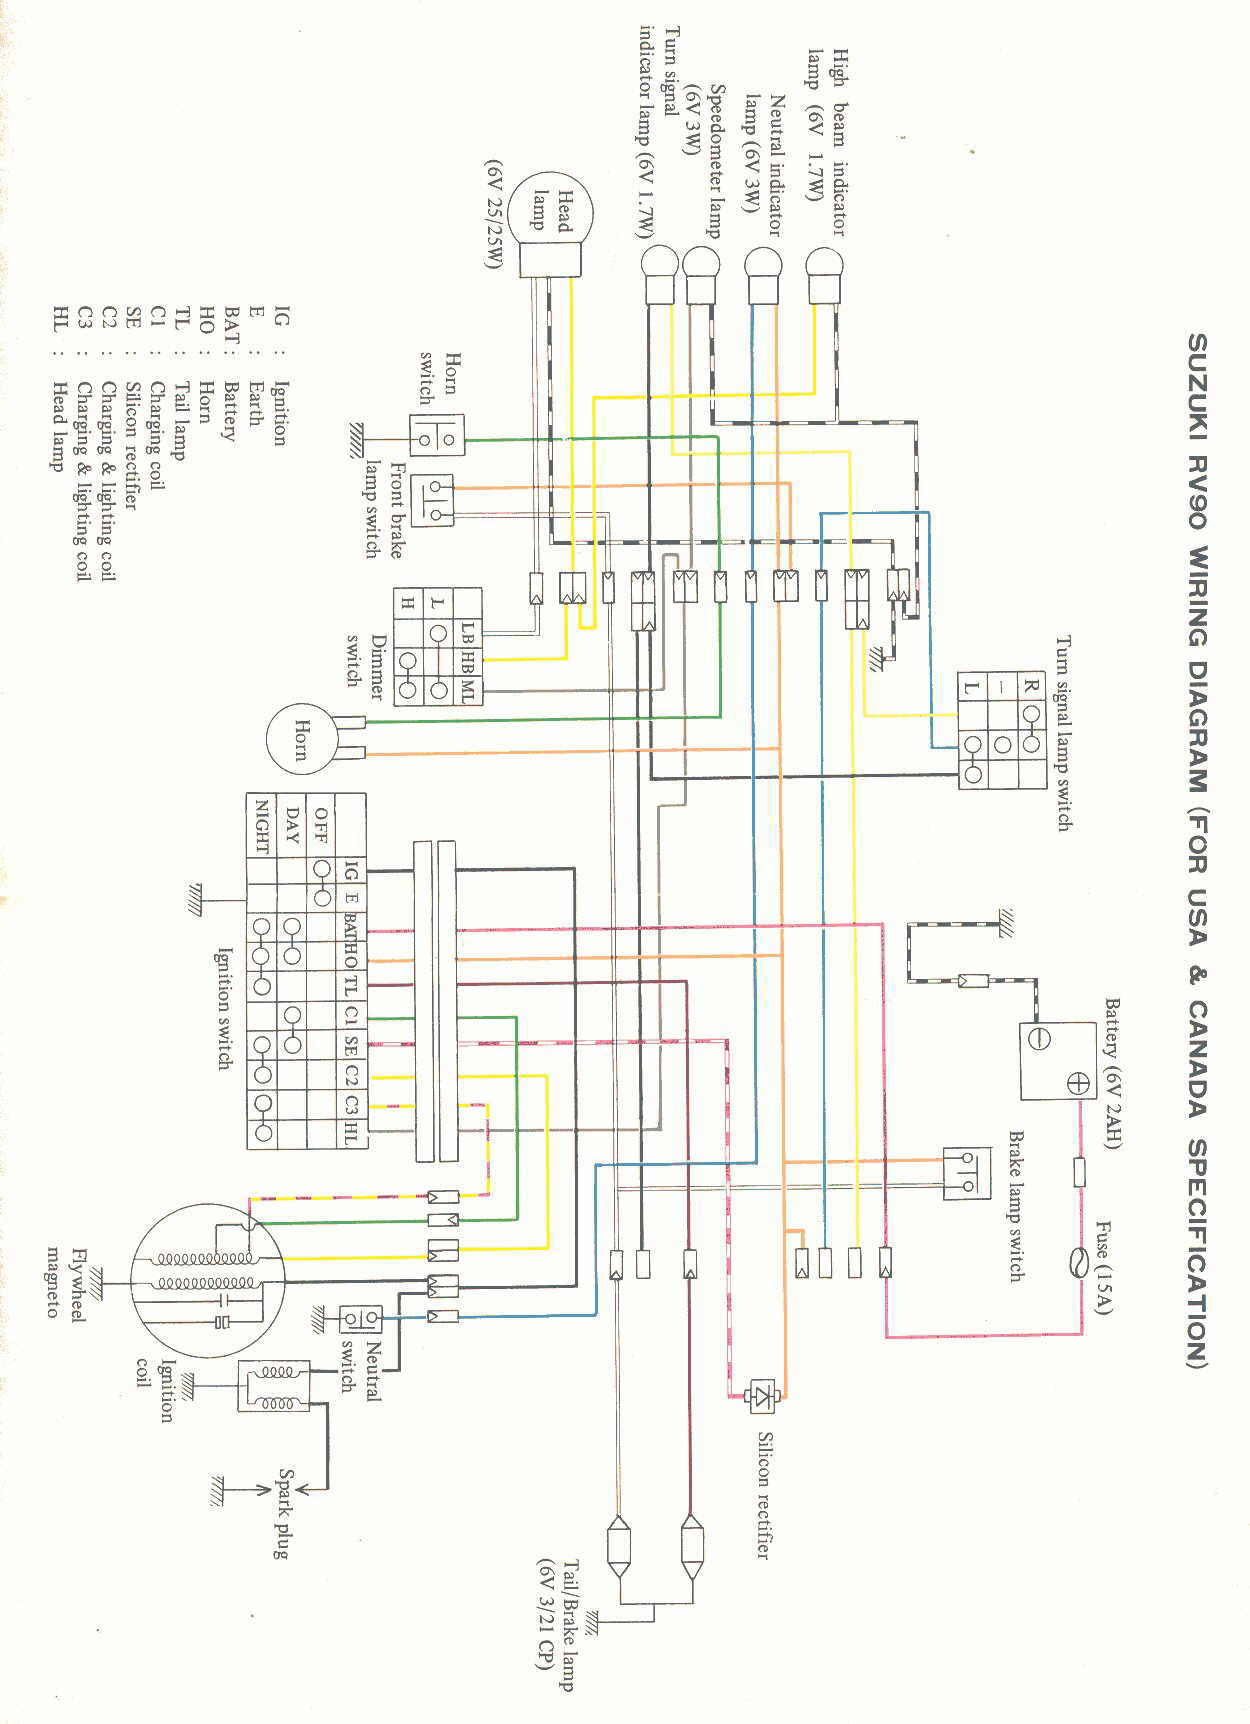 DIAGRAM] Suzuki Rv 90 Wiring Diagram FULL Version HD Quality Wiring Diagram  - WEBUMLDIAGRAMS.BELEN-RODRIGUEZ.ITbelen-rodriguez.it